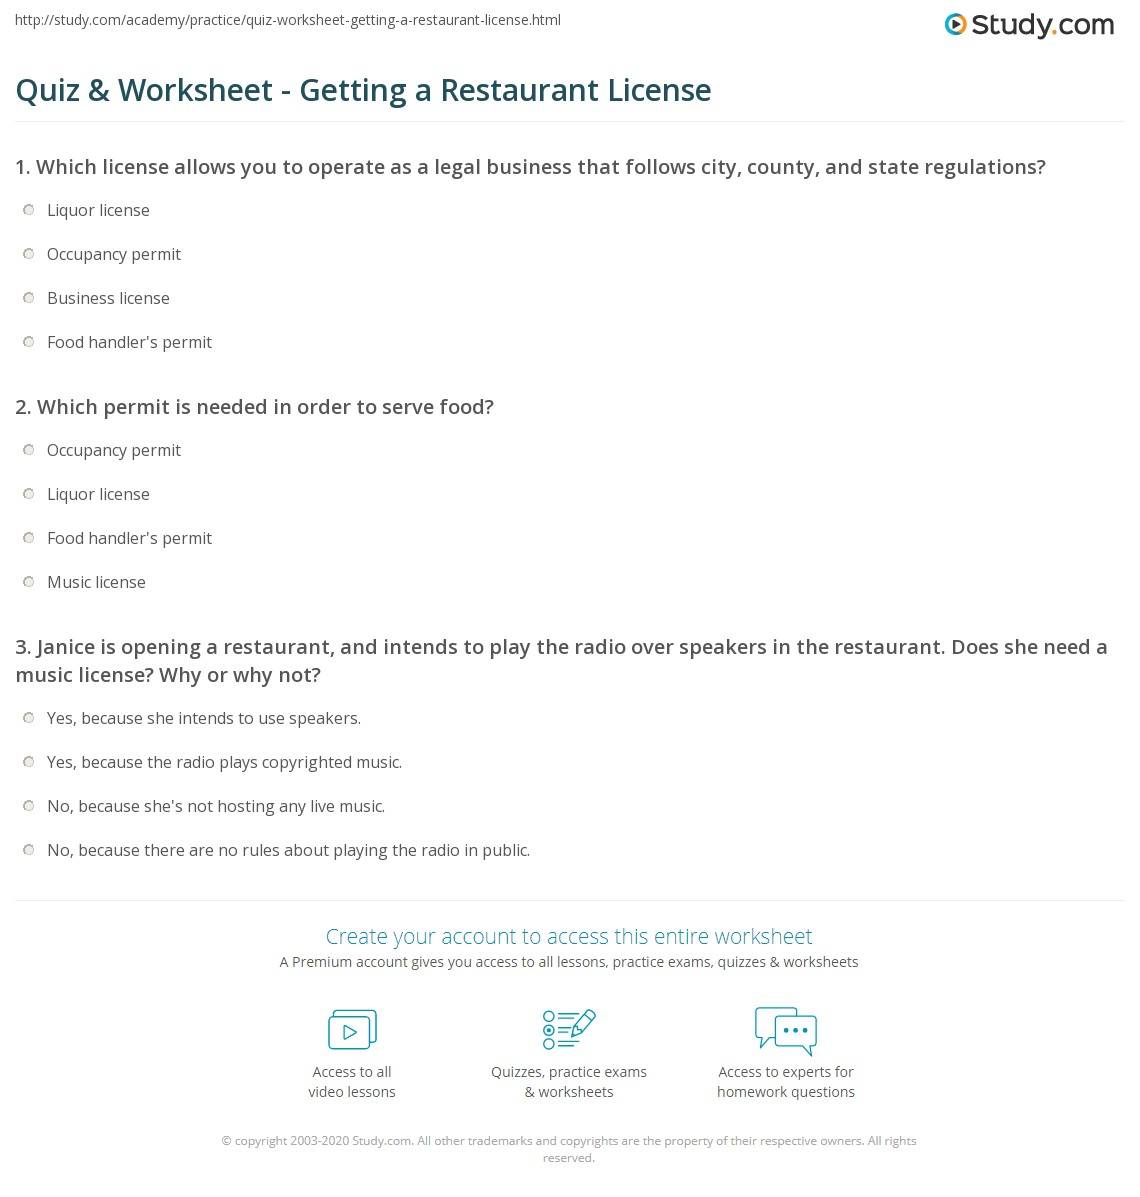 quiz worksheet getting a restaurant license study com which permit is needed in order to serve food